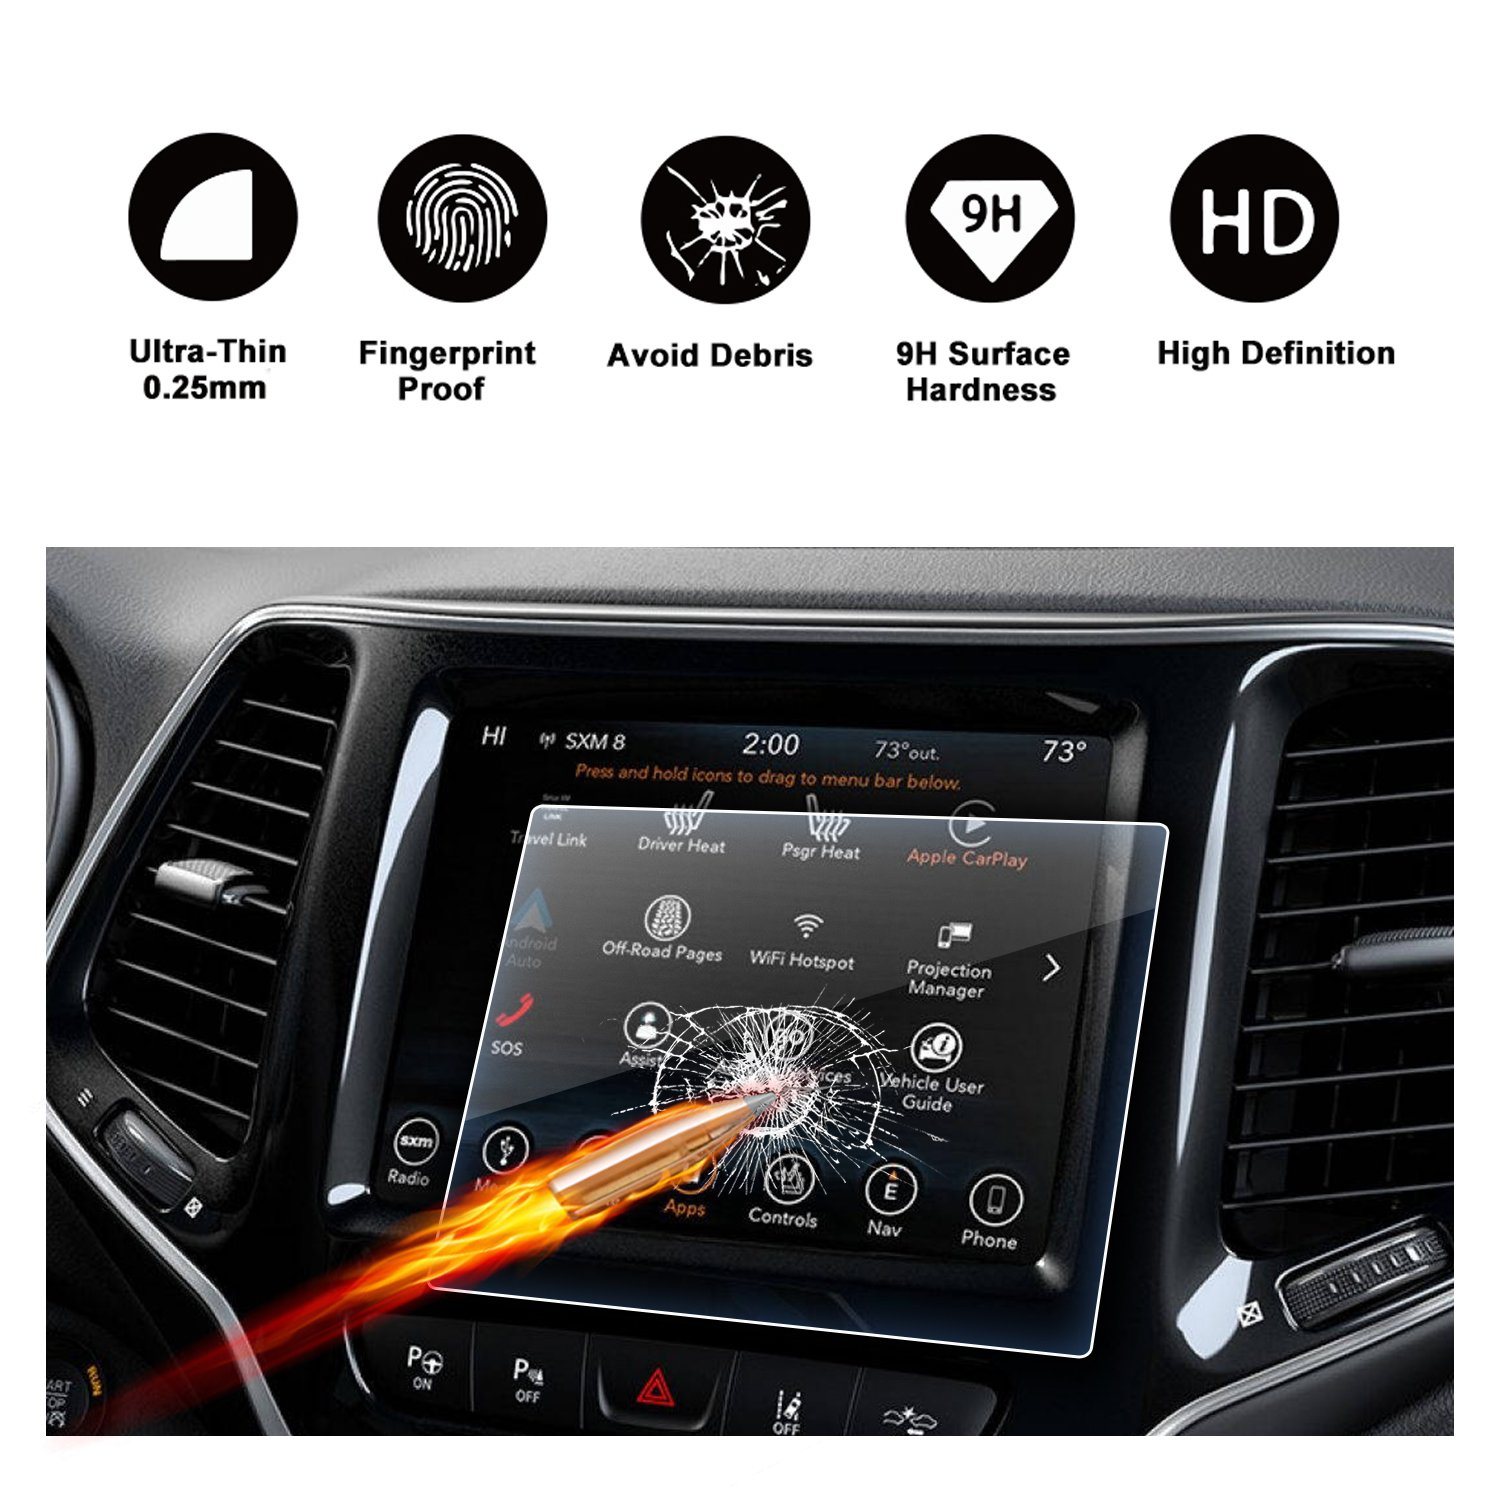 2019 Jeep Cherokee Uconnect Display Navigation Screen Protector, R RUIYA HD Clear TEMPERED GLASS Screen Guard Shield Scratch-Resistant Ultra HD Extreme Clarity (8.4-Inch)